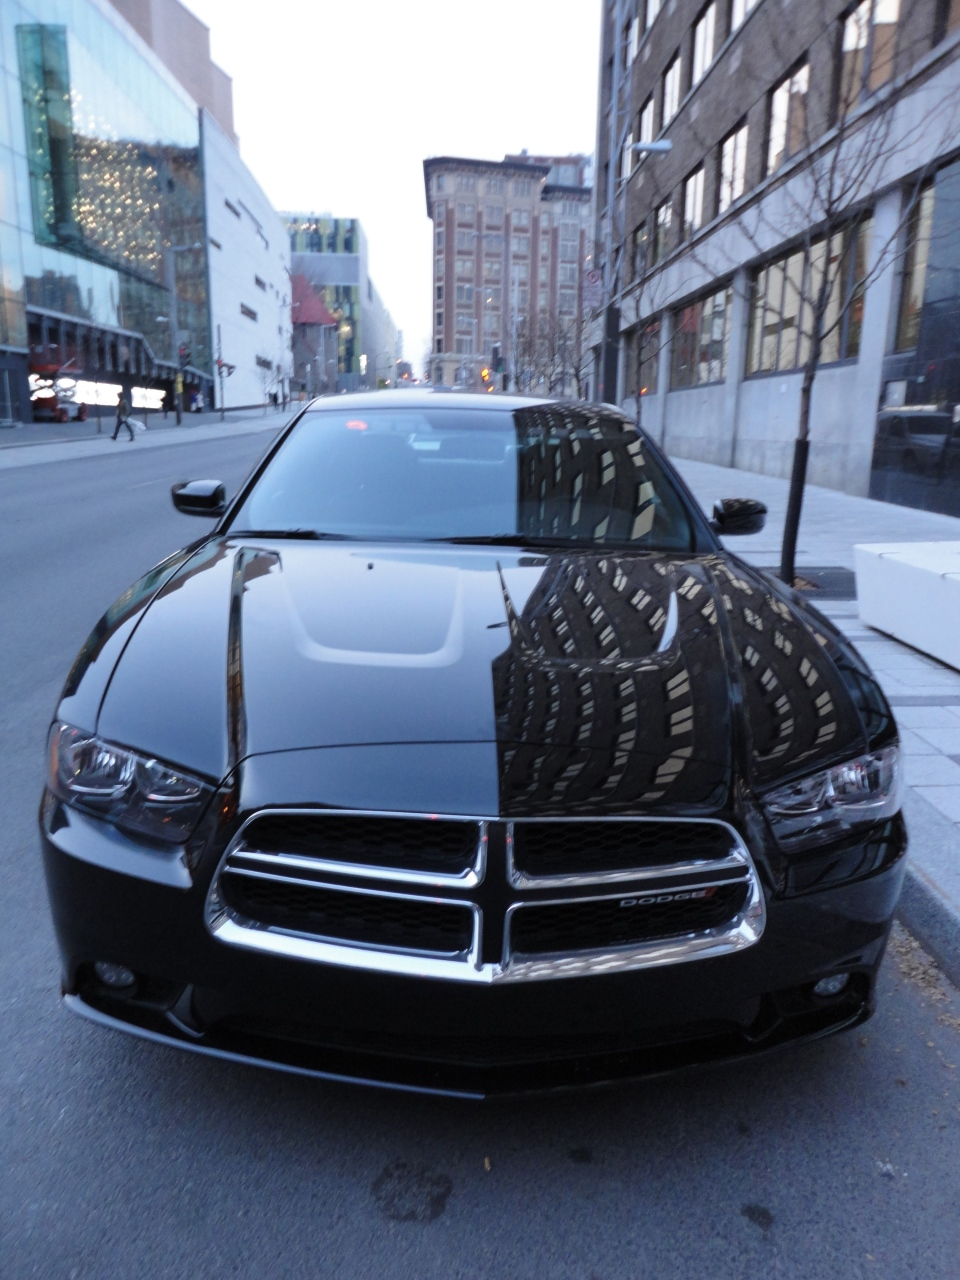 Montreal Police Acquire Black Squad Cars CTV News Montreal